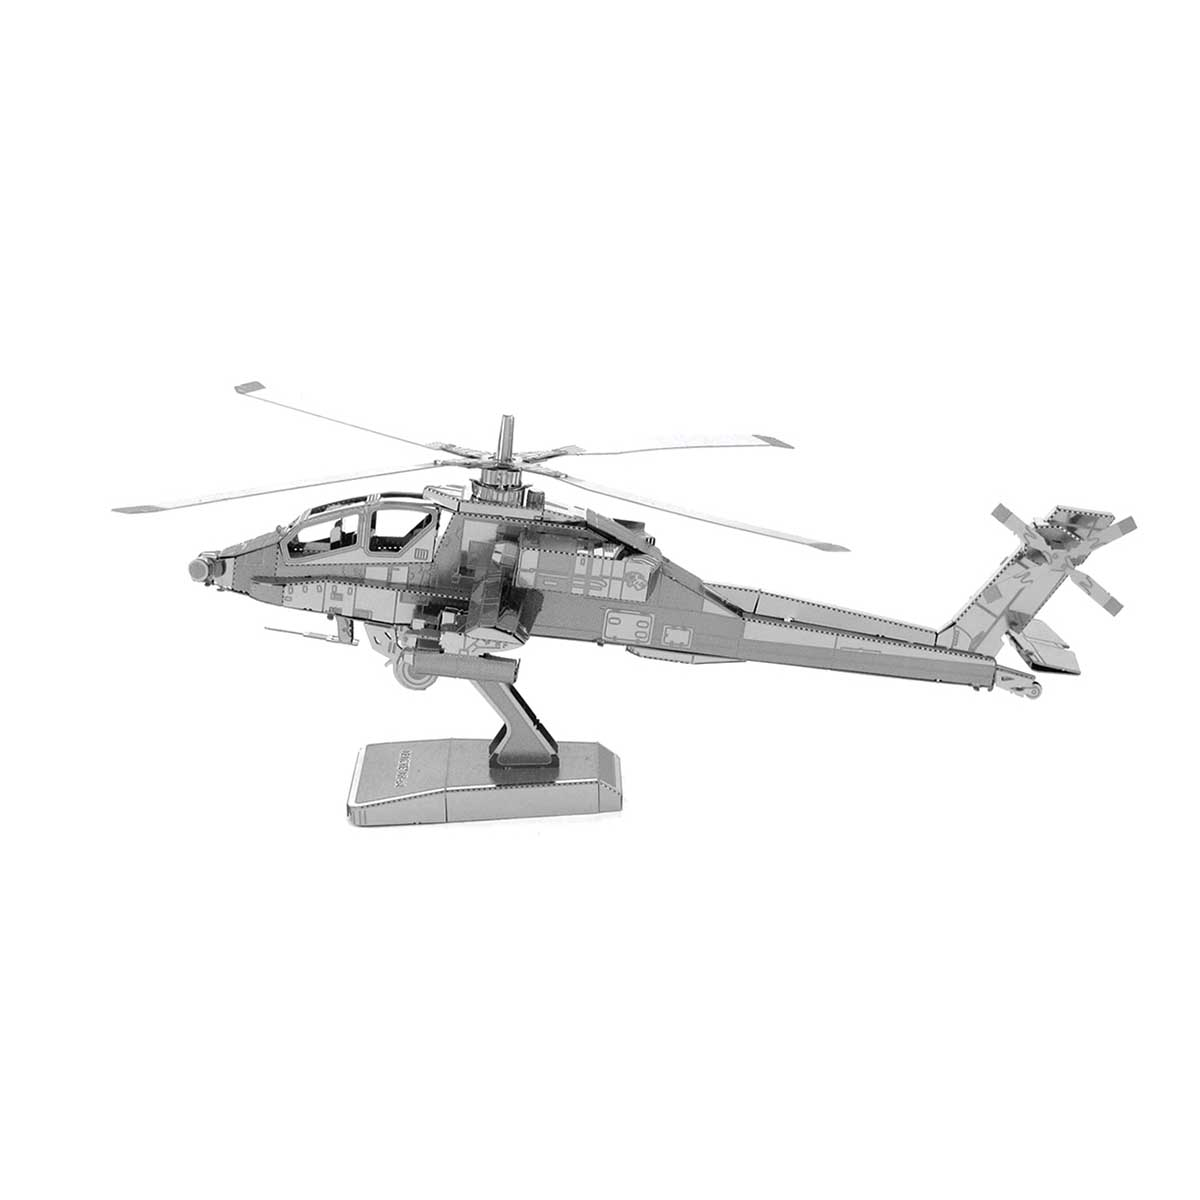 AH-64 Apache Boeing helicopter Planes 3D Puzzle